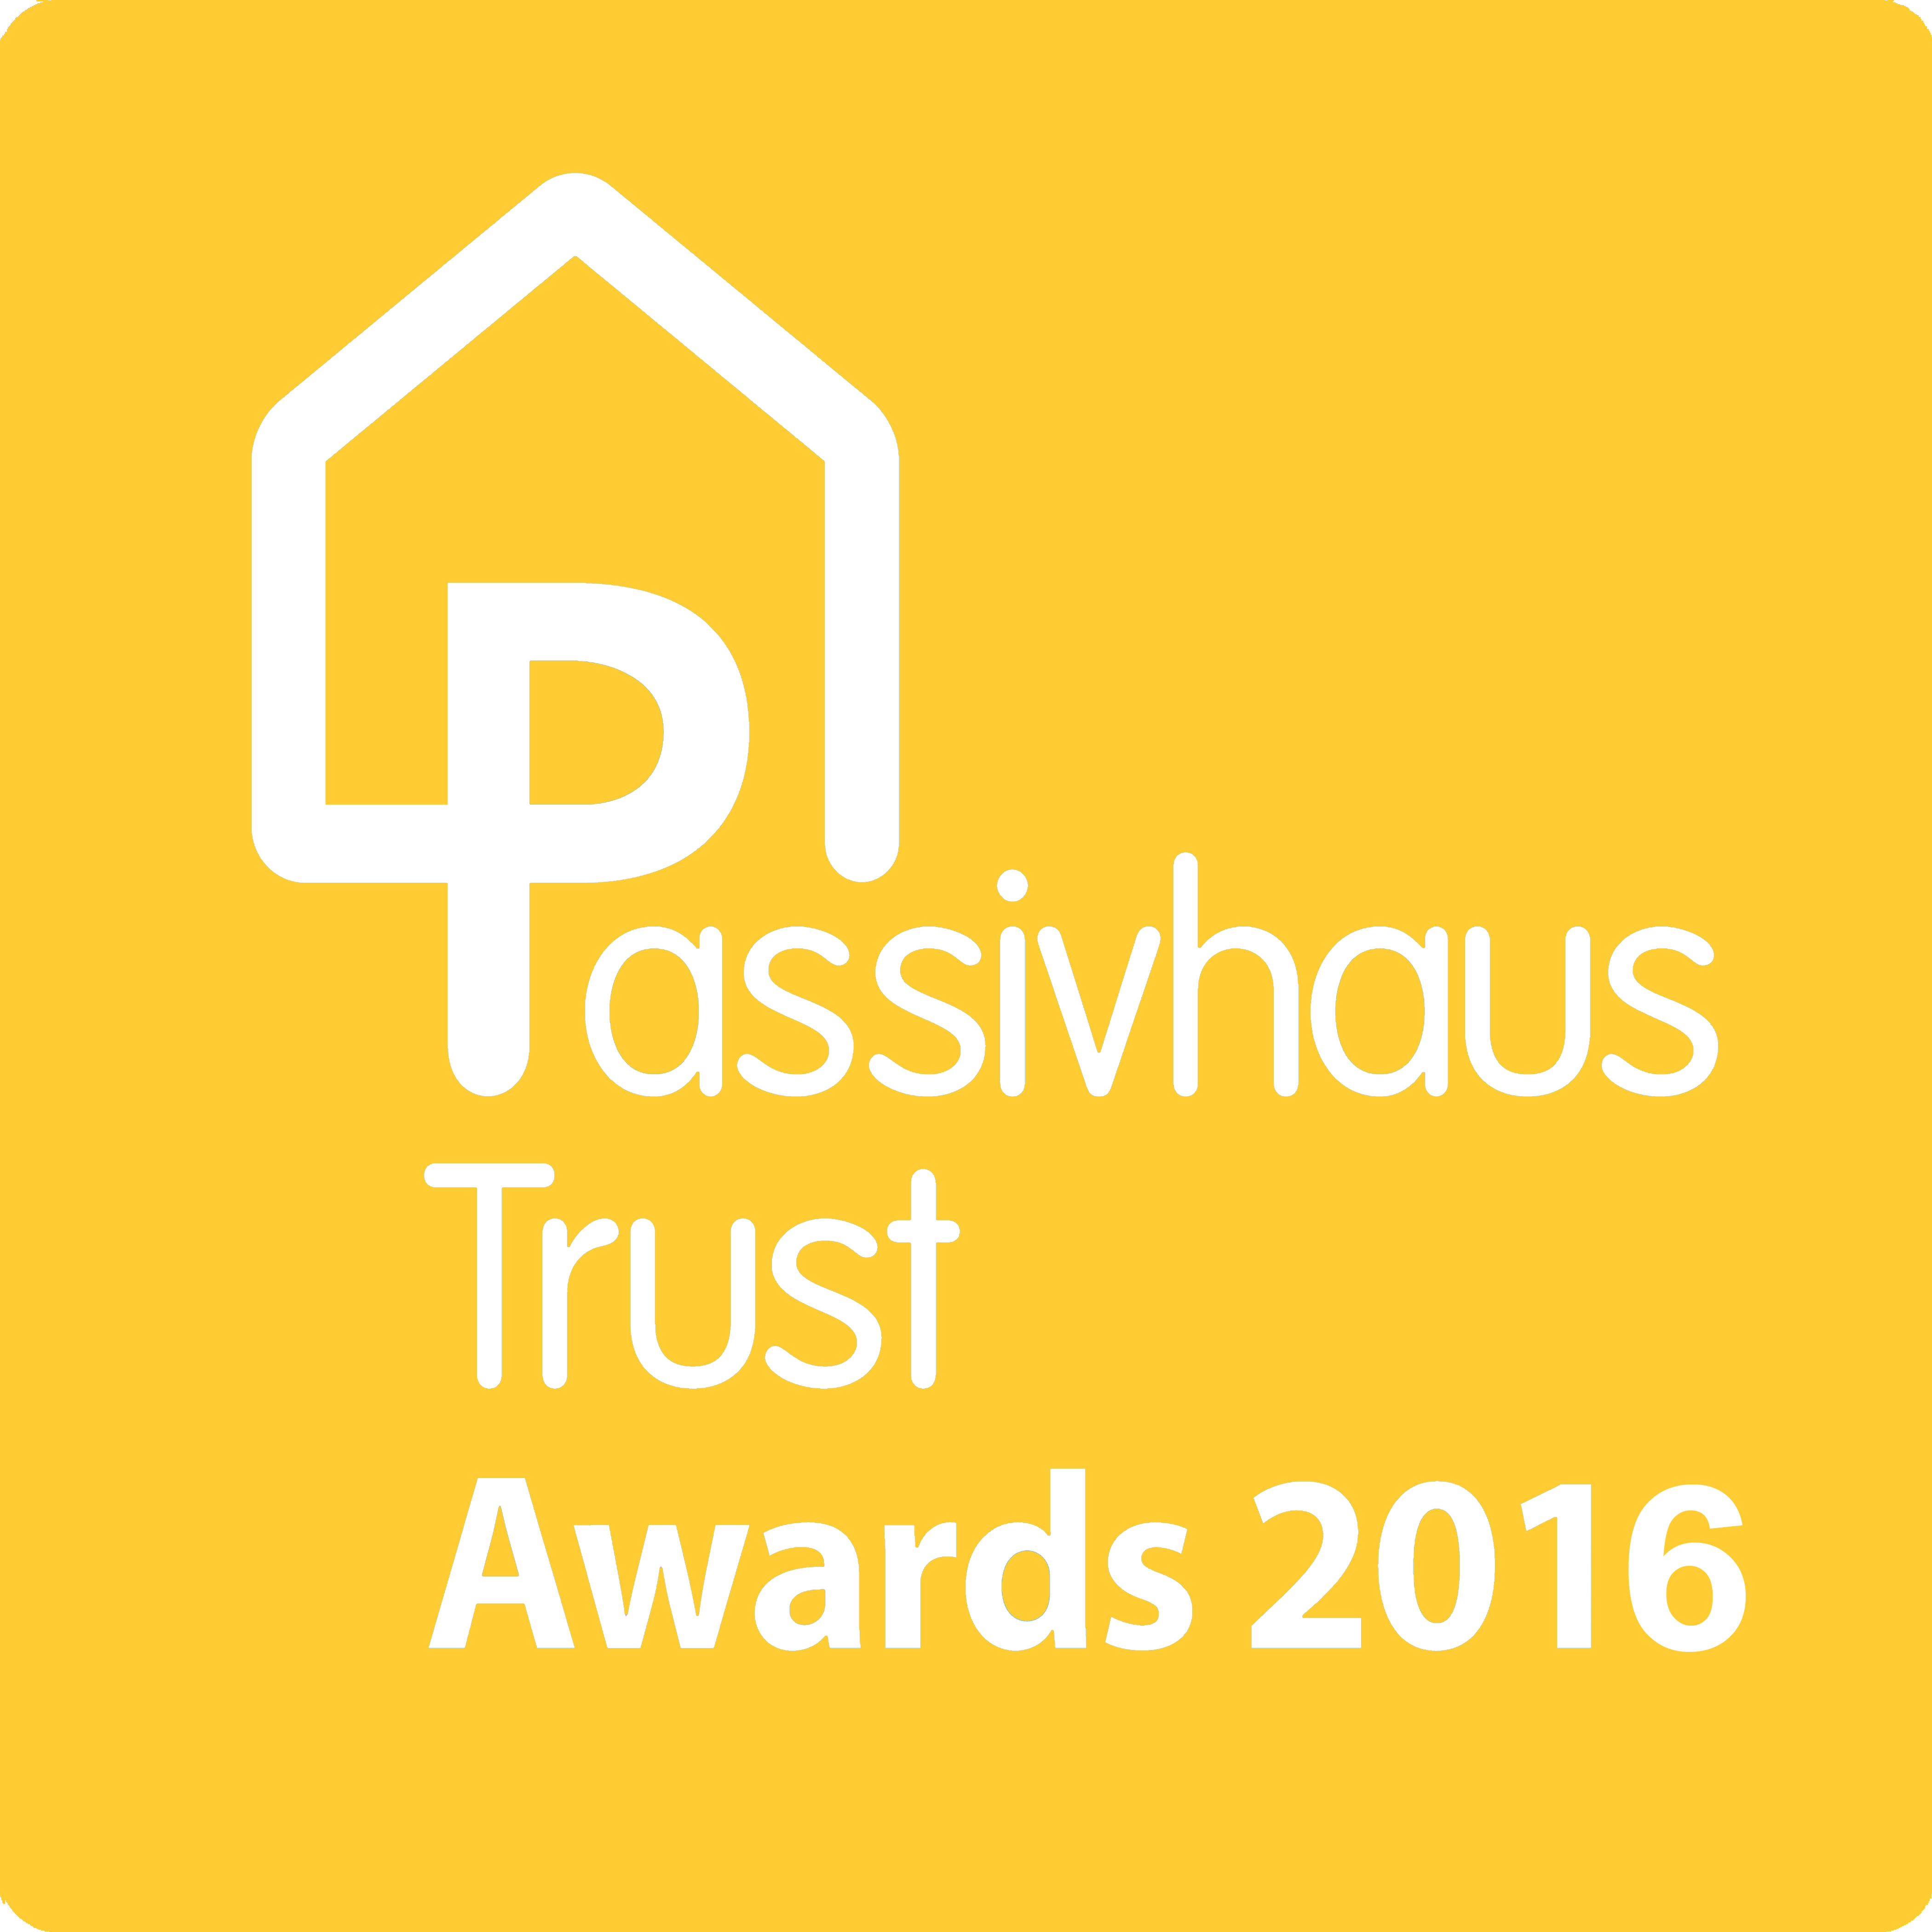 UK Passivhaus Awards 2016